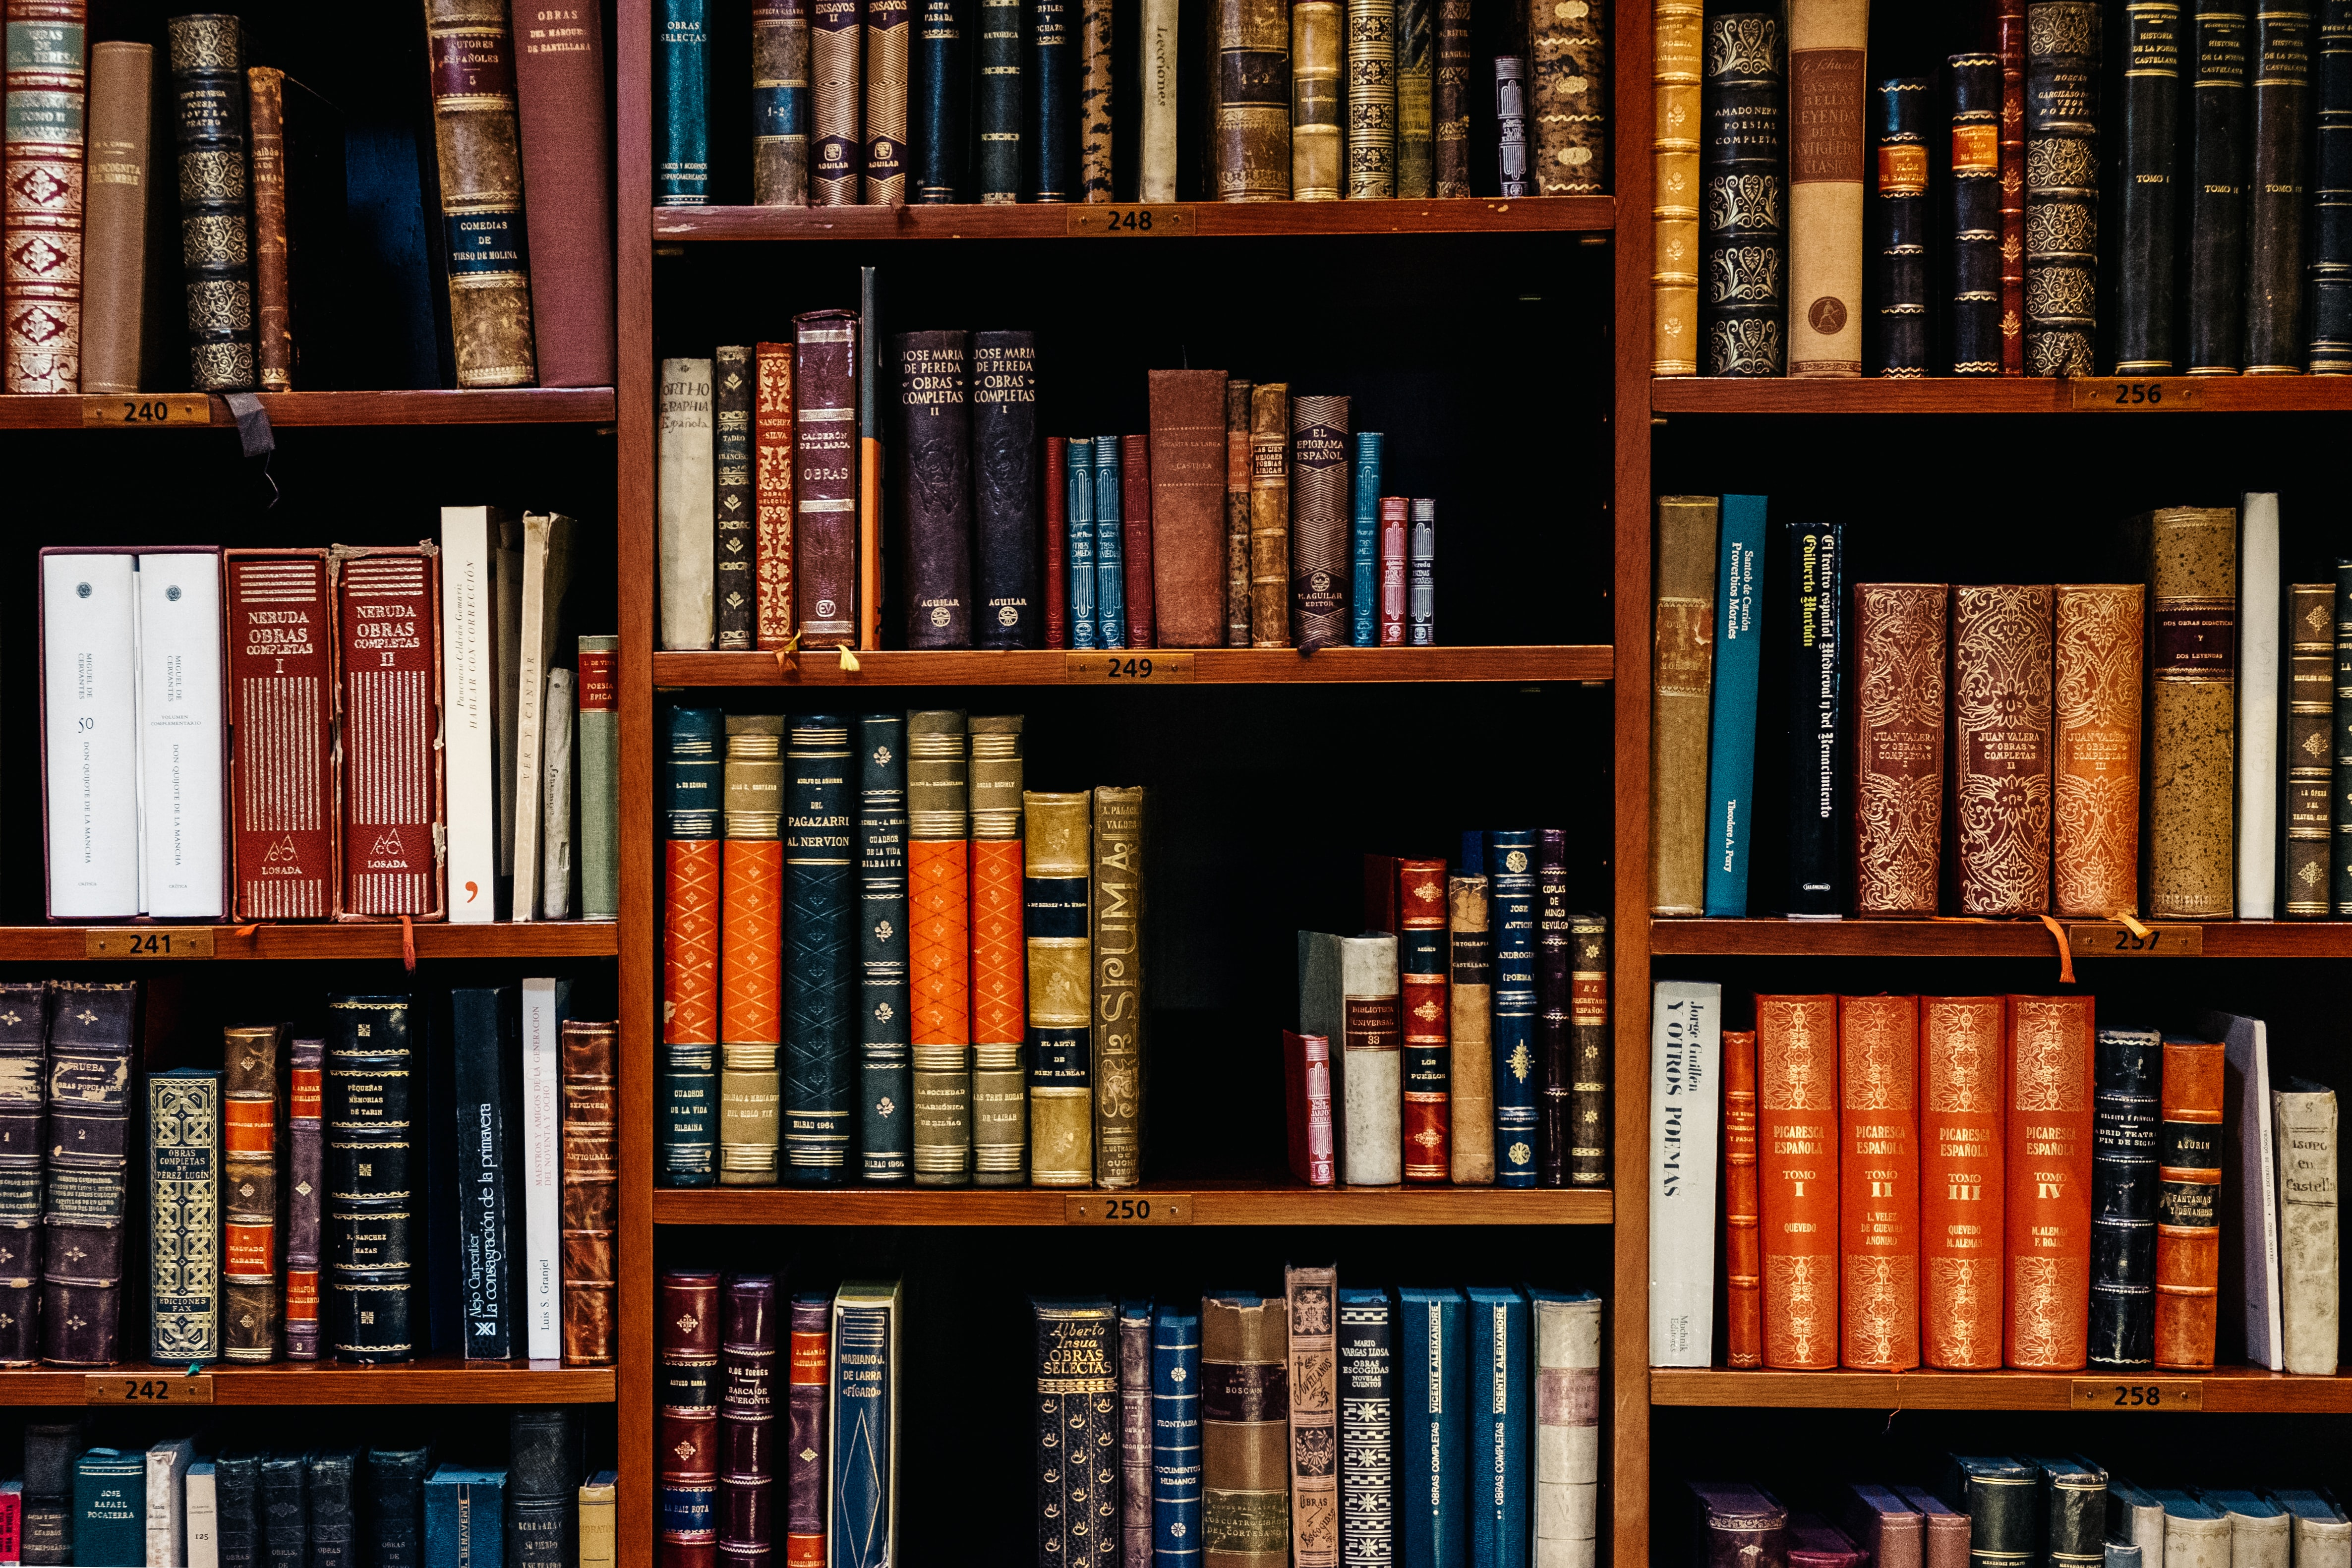 An image of a bookshelf full of law books.